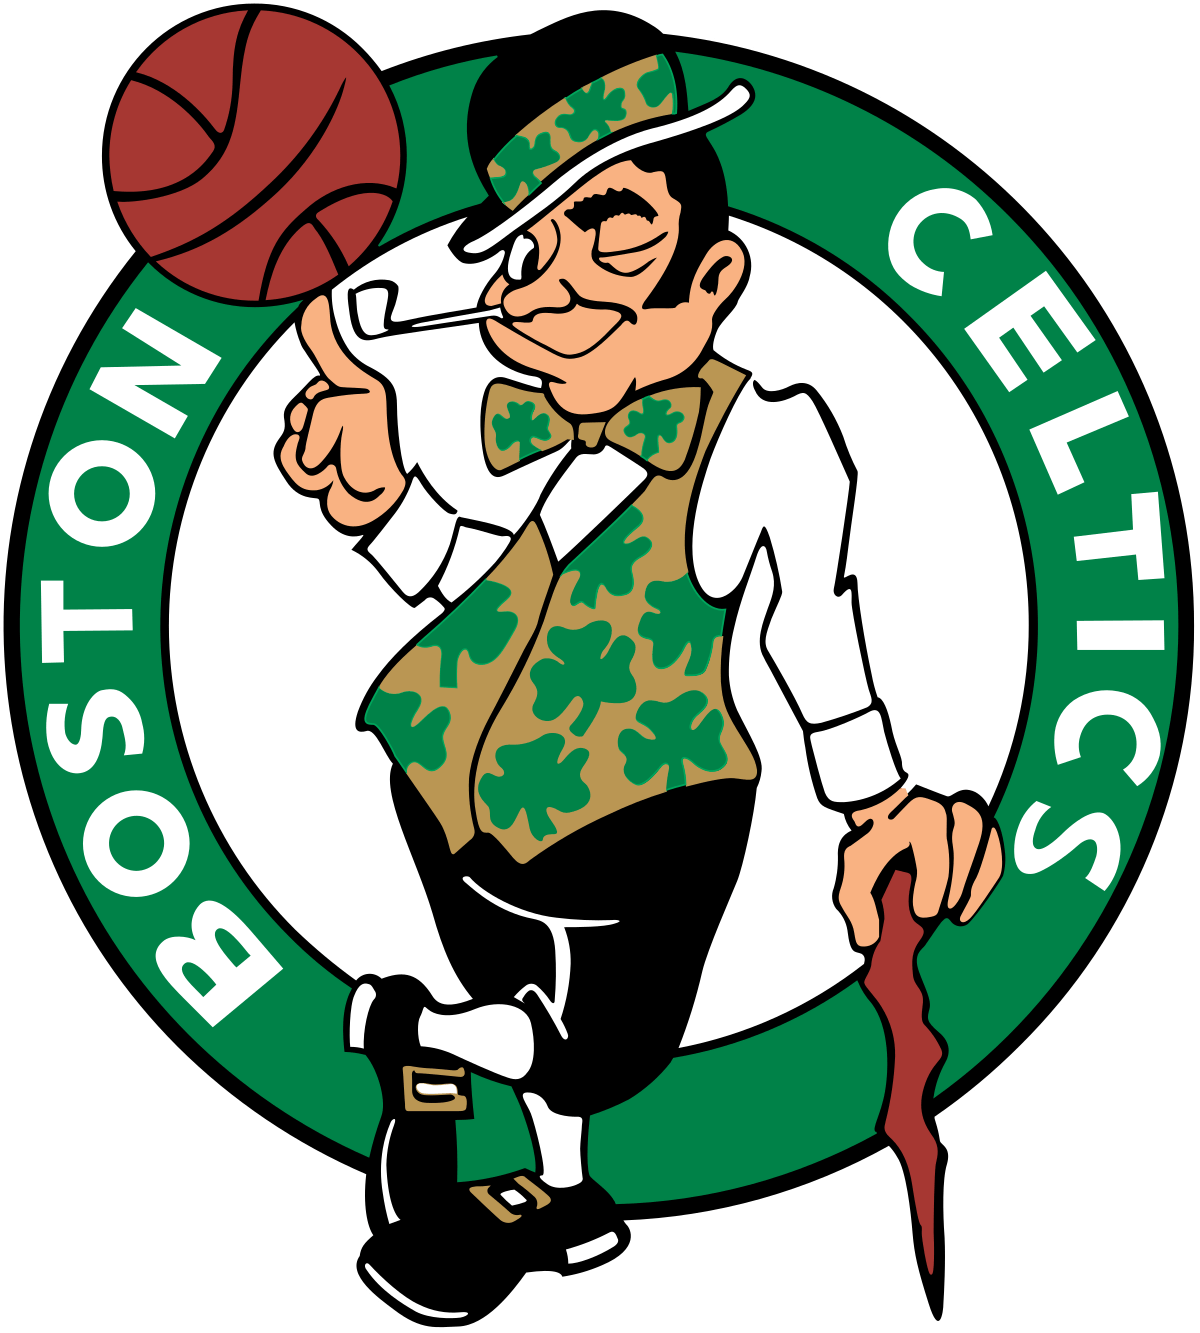 Boston Celtics Logo - Boston Celtics